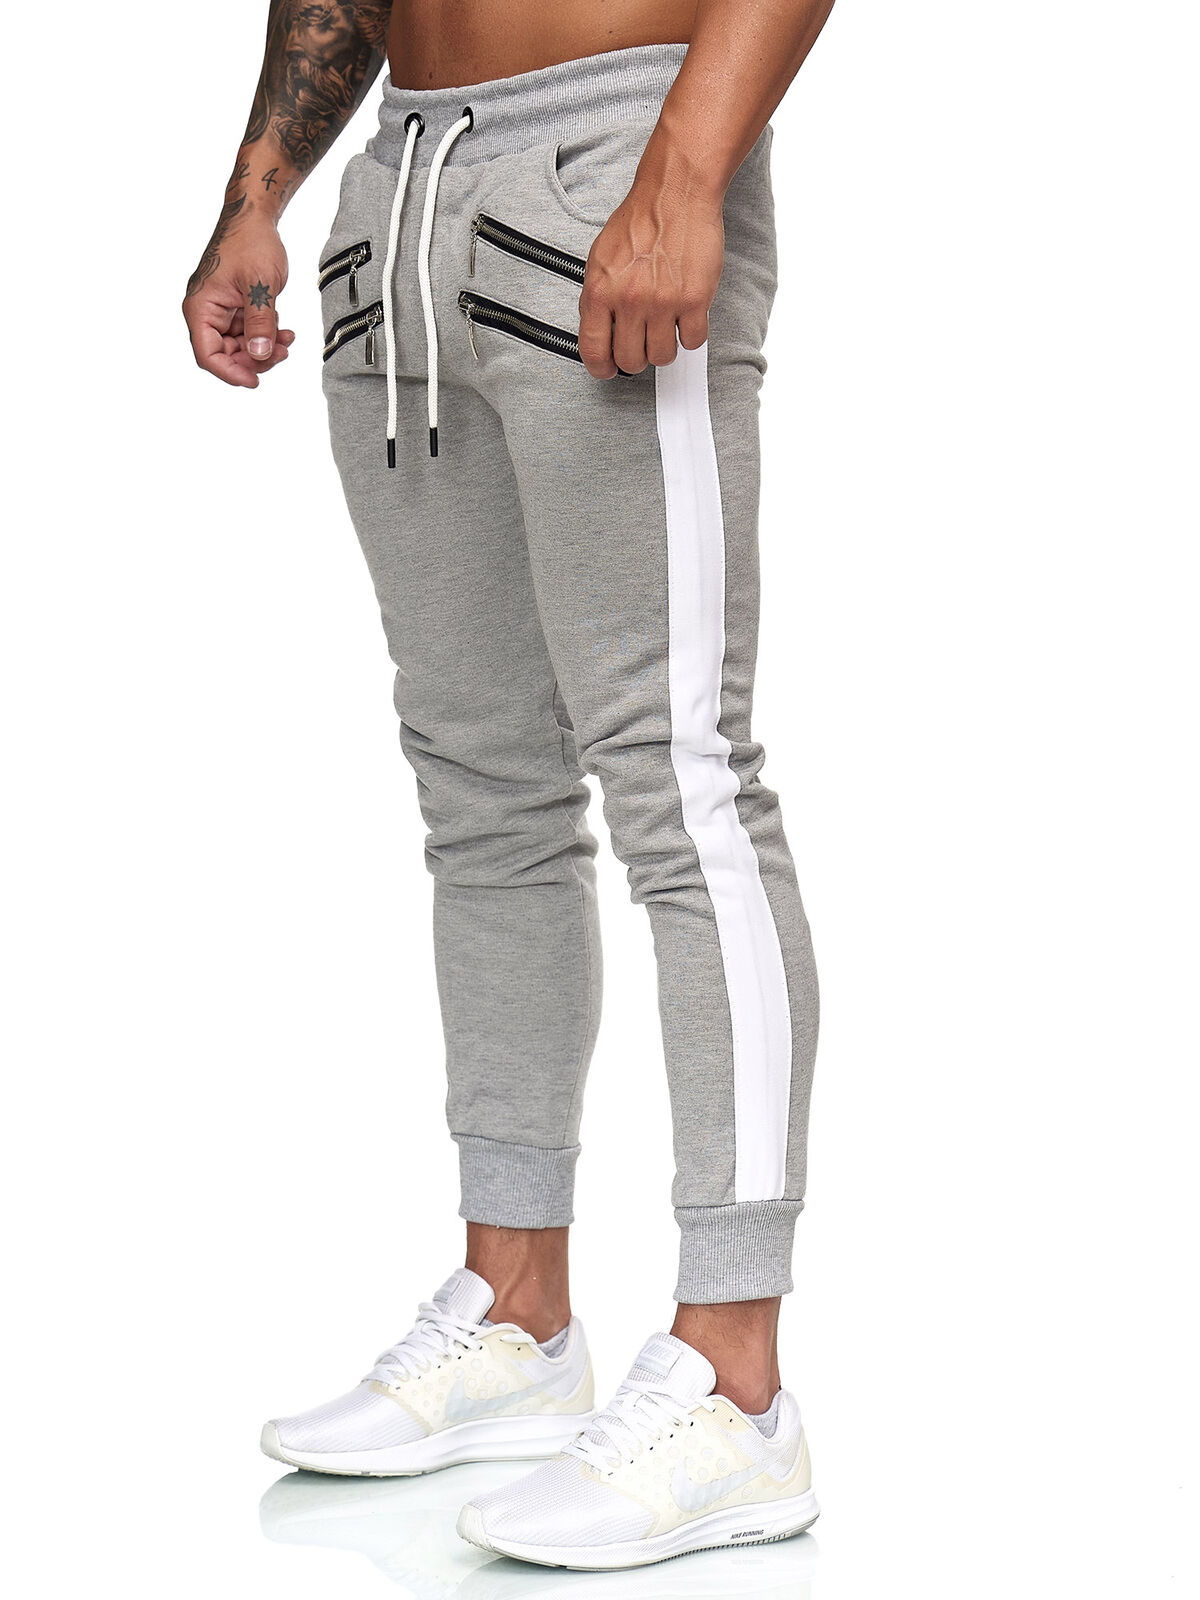 Jogging Joggers Training Pants Trousers Jogger Streetwear Tr